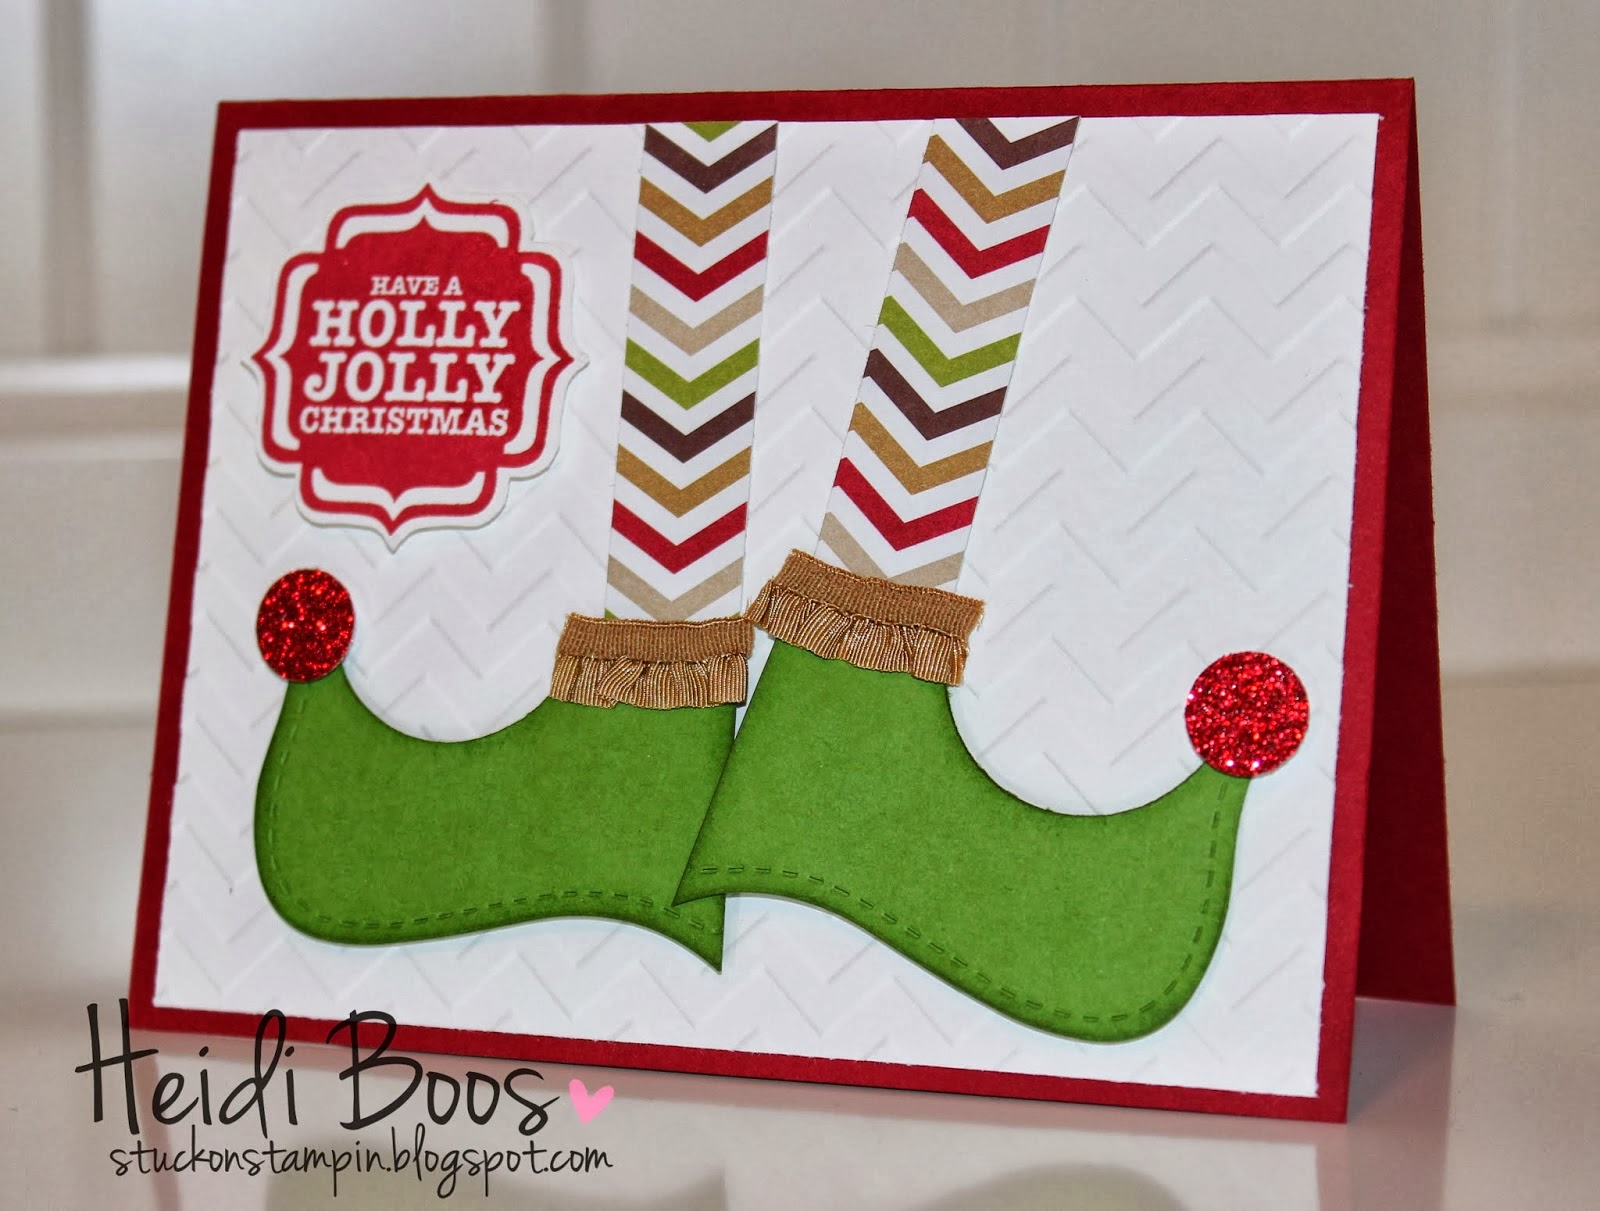 http://stuckonstampin.blogspot.com/2013/11/dancing-christmas-elf-shoes.html